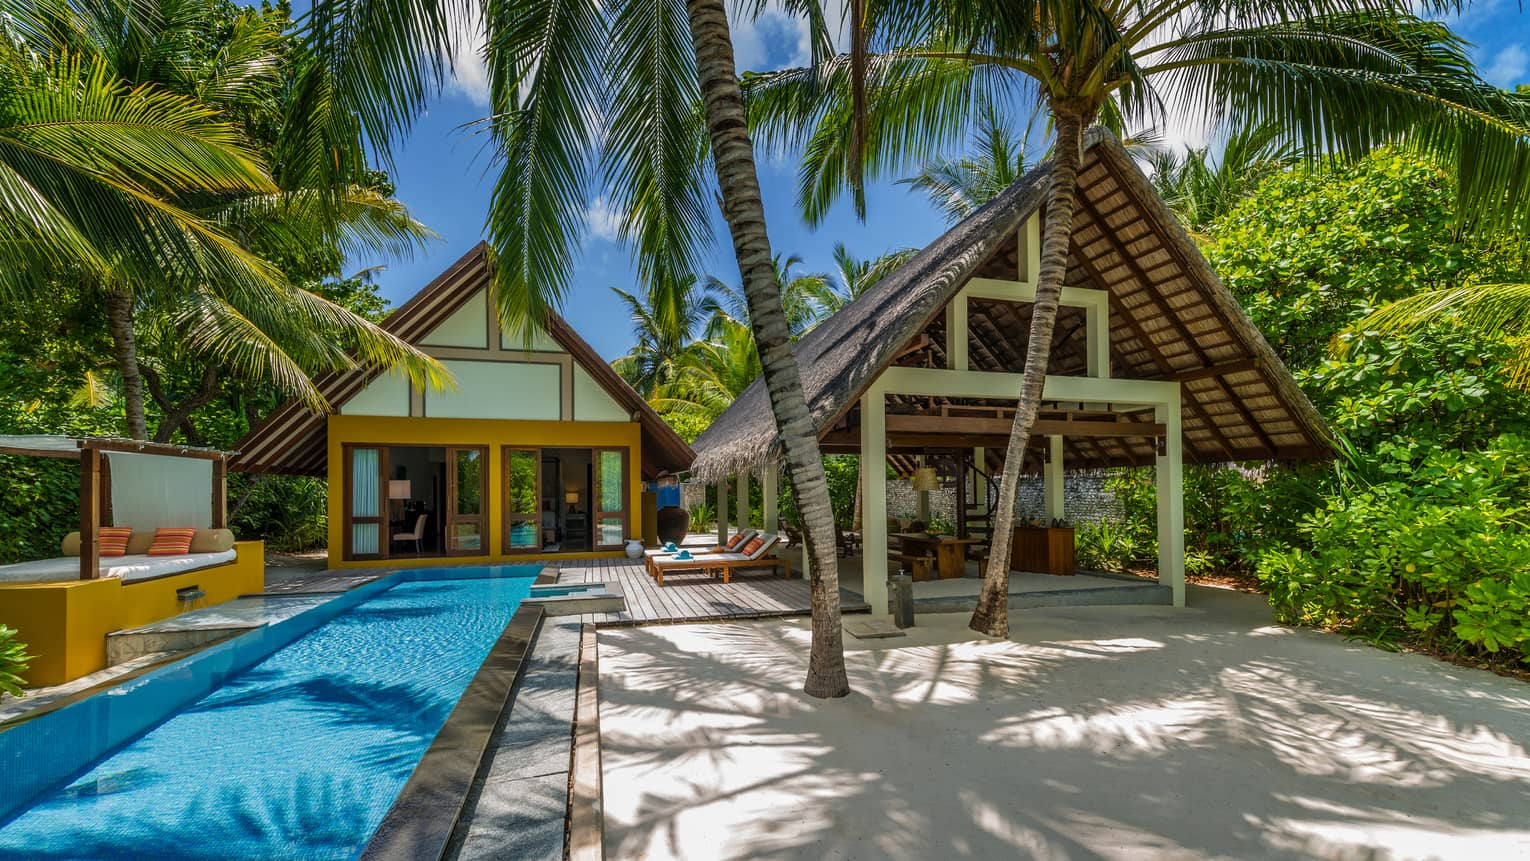 Beach Villa with Pool exterior, outdoor pool by bungalow and thatched roof pavilion